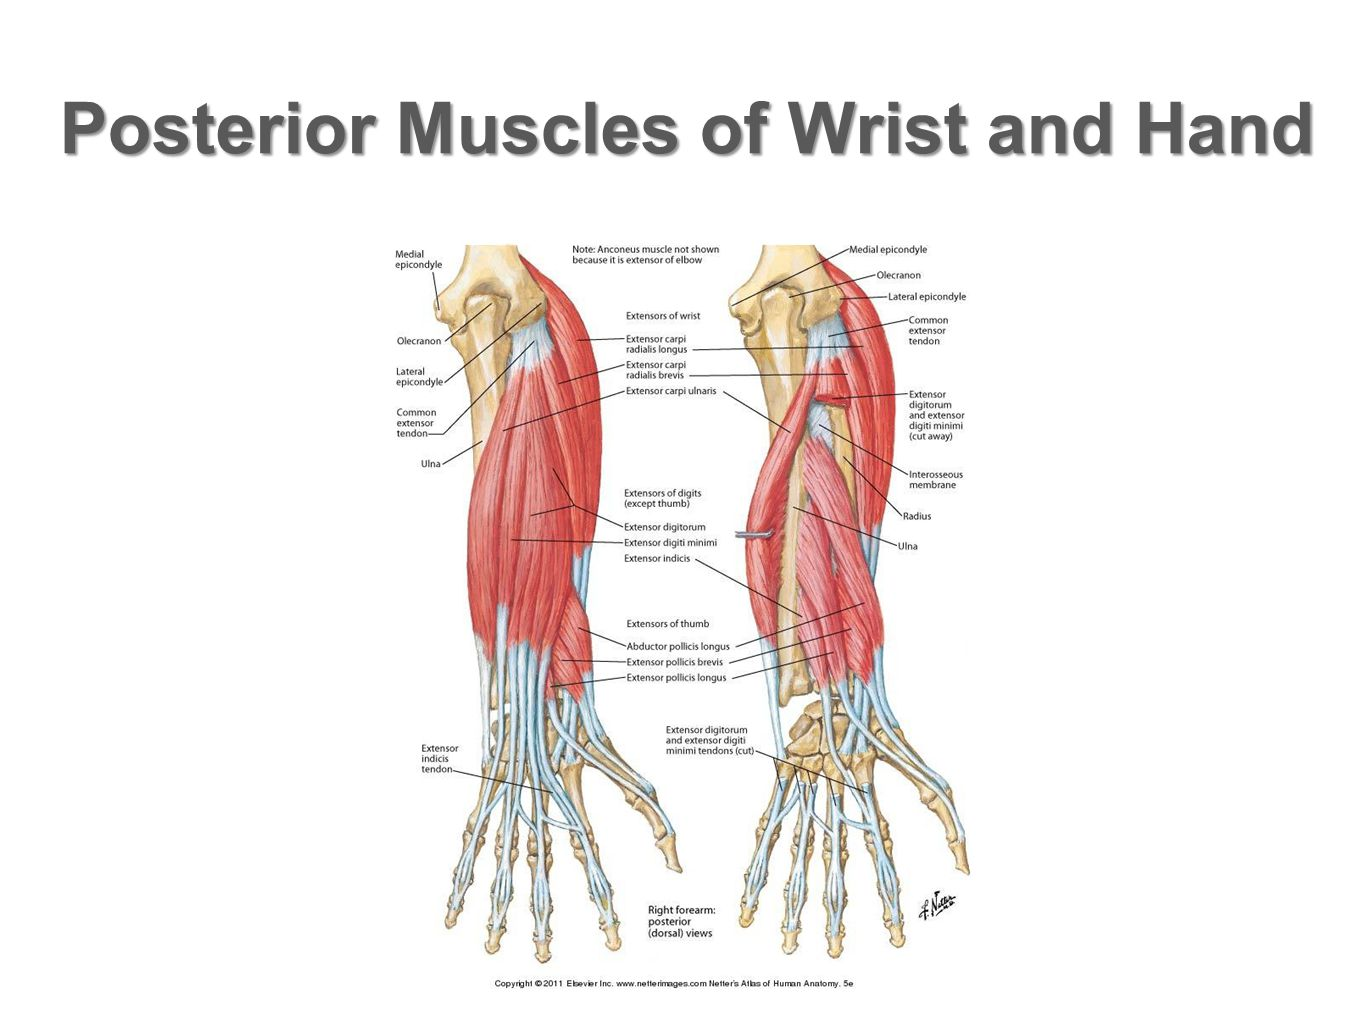 Posterior Muscles of Wrist and Hand